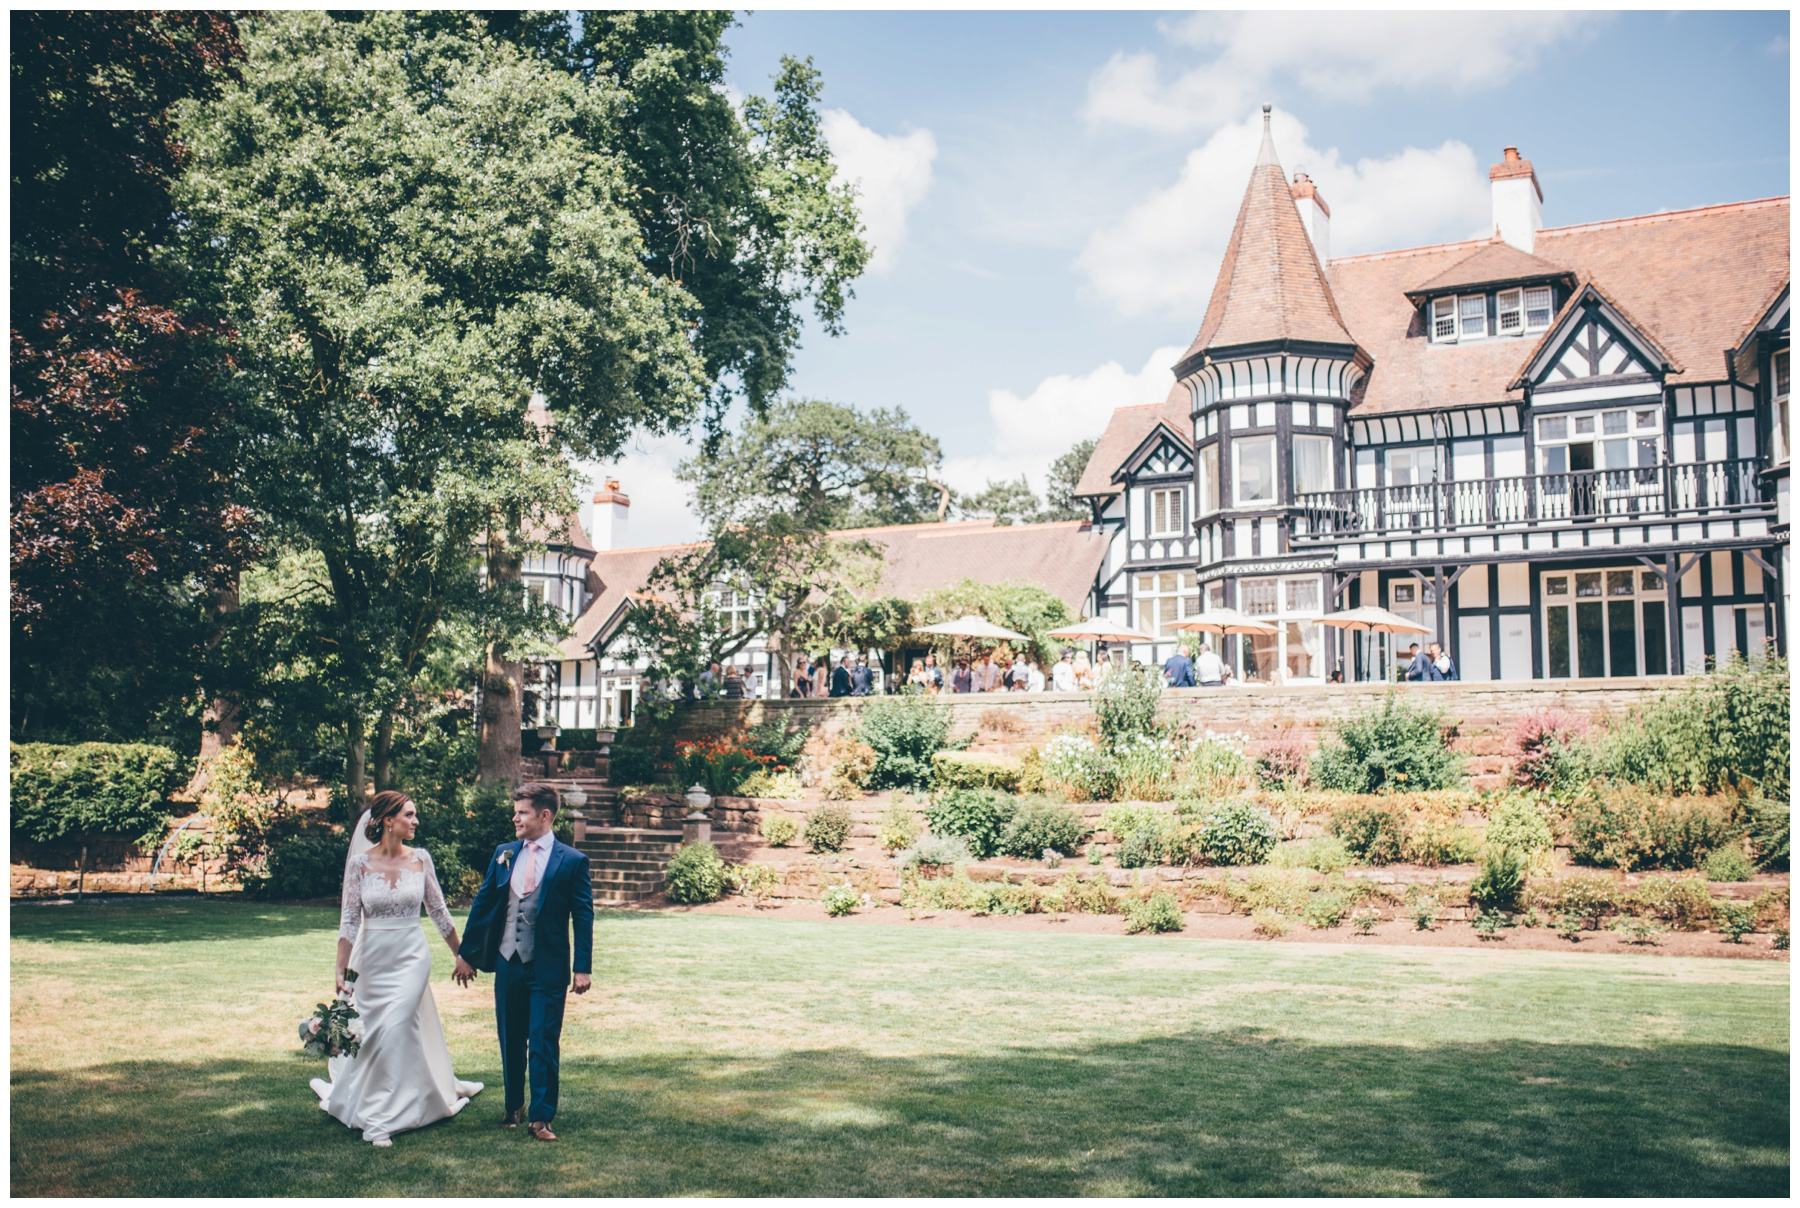 Newlyweds stroll across the beautiful grounds at Tilstone House in Tarporley.